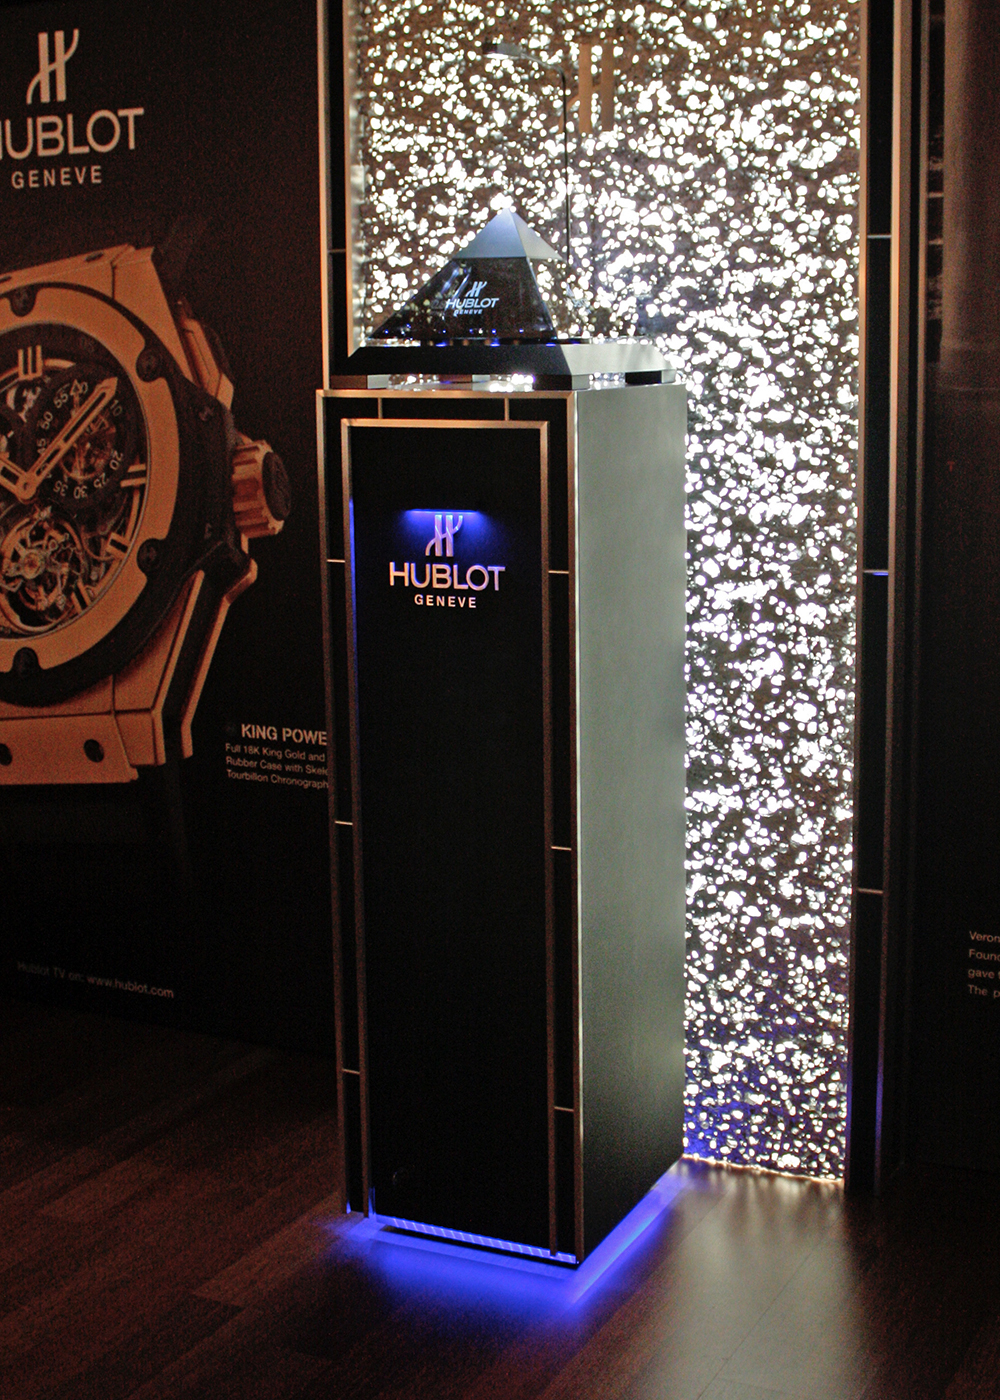 Hublot and its magic Pyramid box at Baselworld 2010.